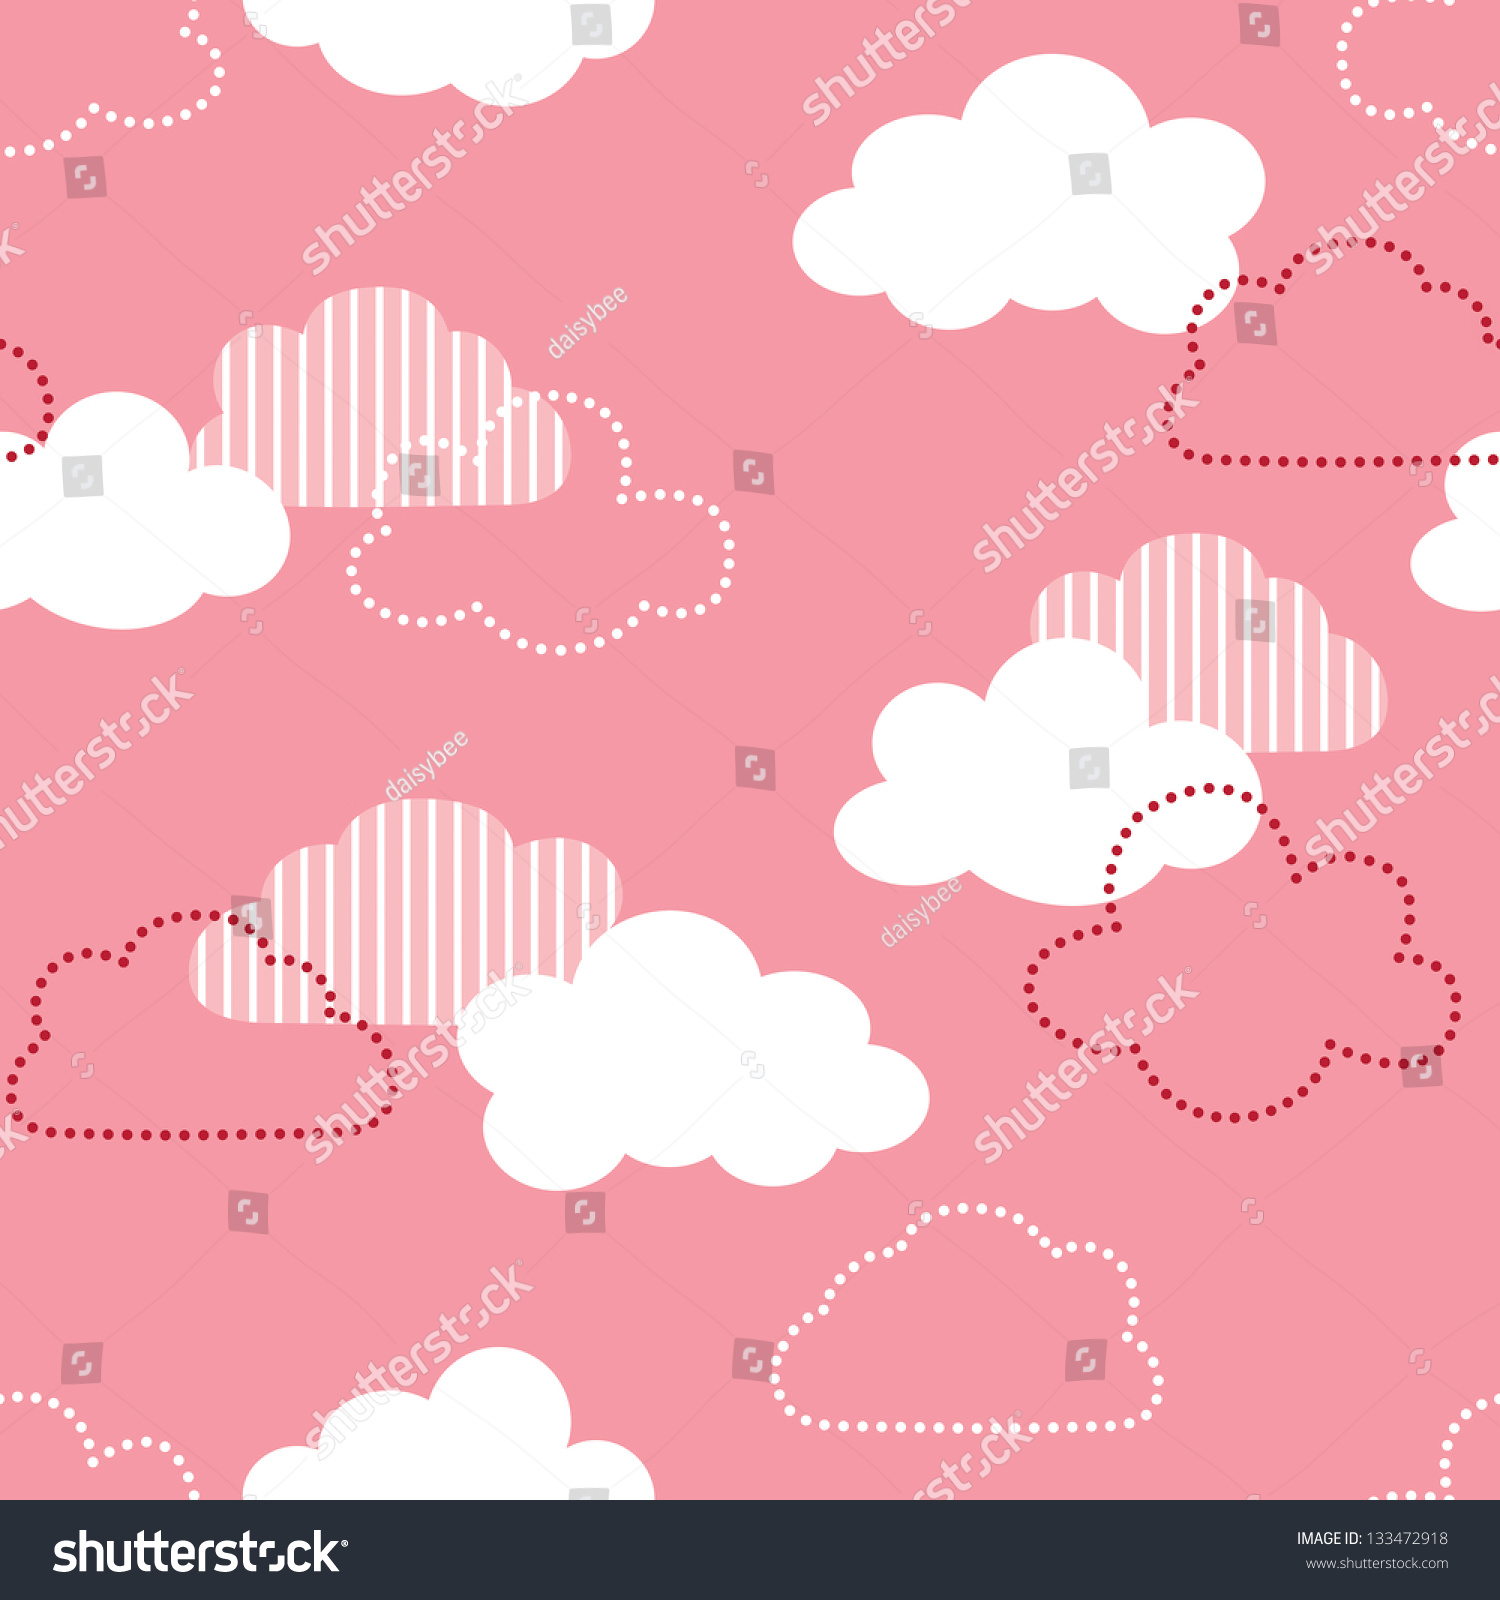 How to scrapbook good - Jpeg Seamless Vintage Cloud Pattern Good For Baby Shower Birthday Scrapbook Greeting